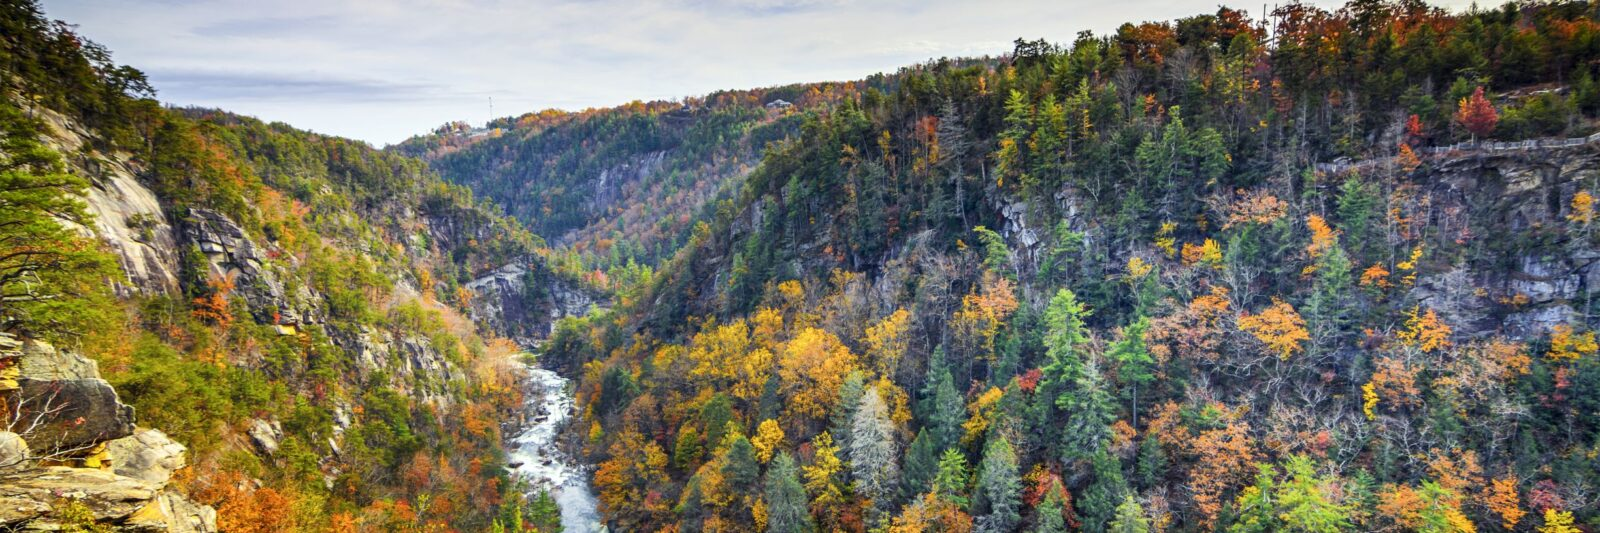 Photo of Tallulah Gorge during Fall.